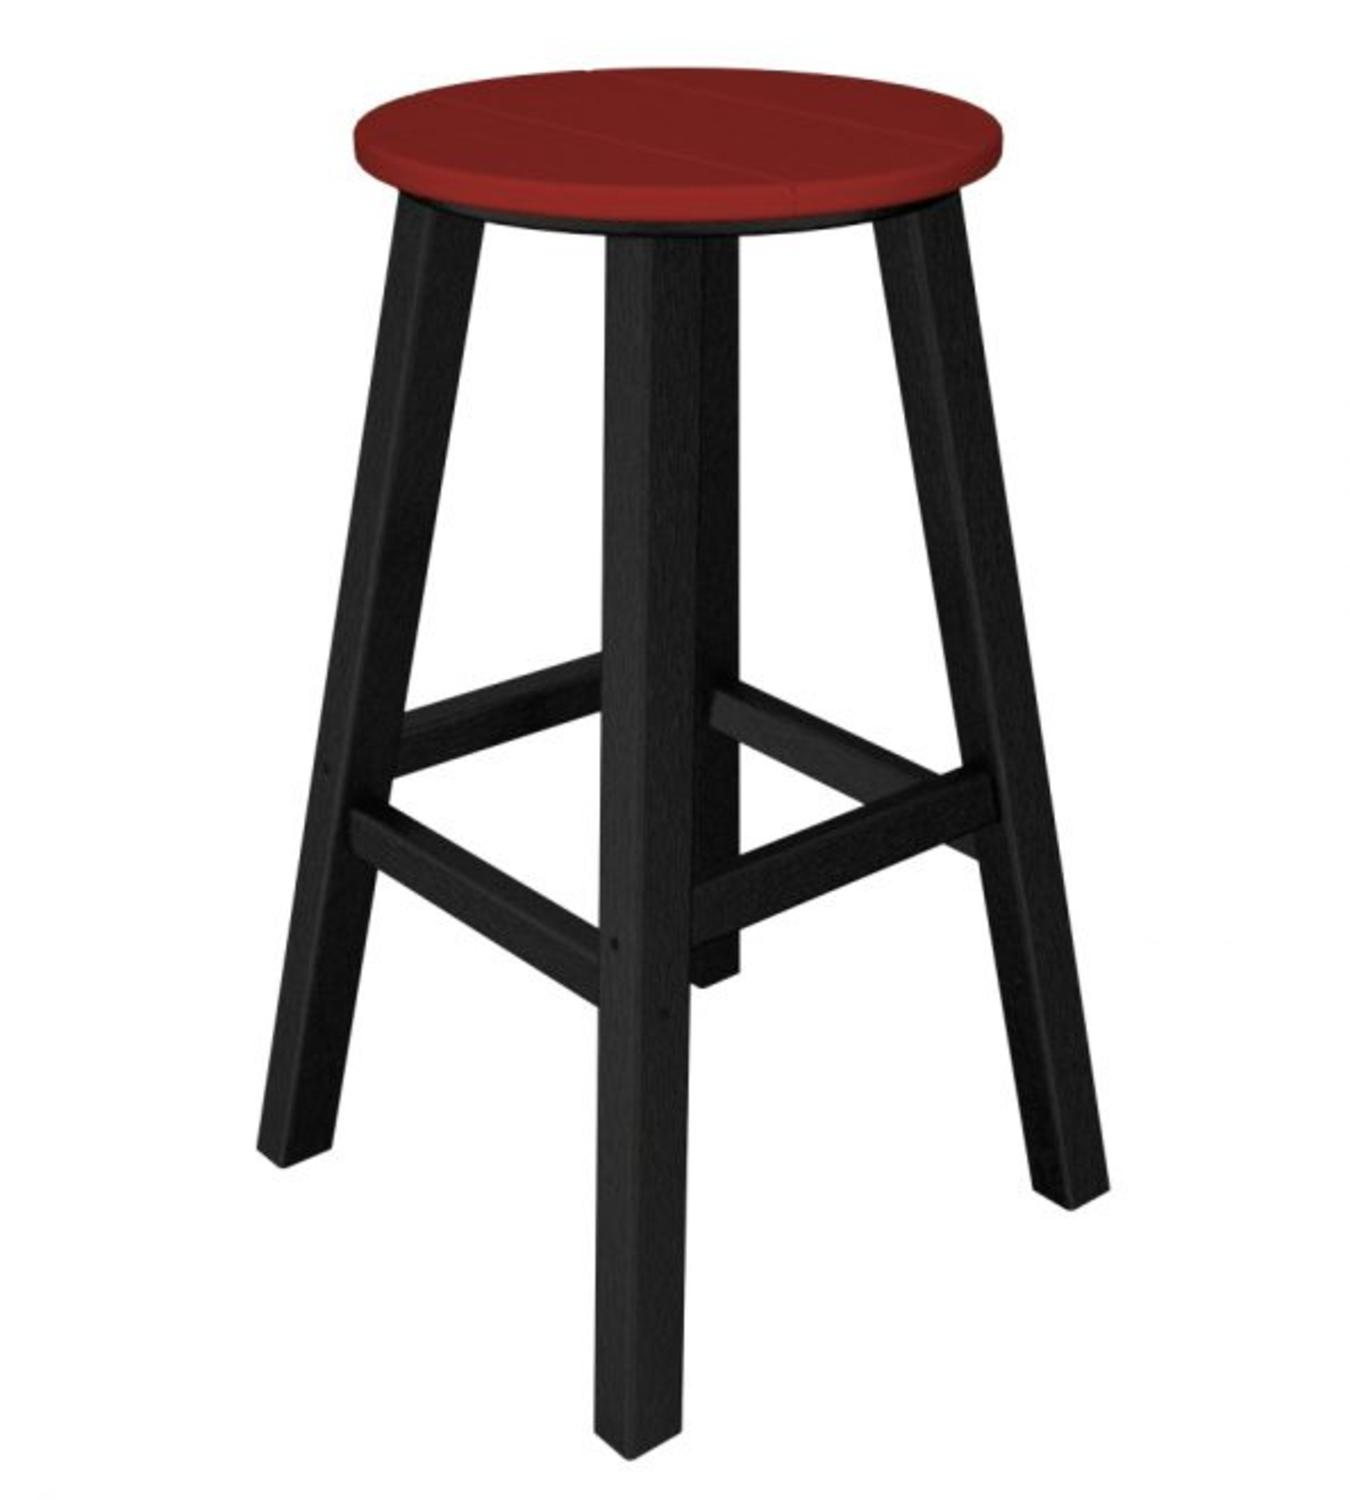 Pack of 2 Recycled Au Courant Outdoor Bar Height Stools -Black & Candy Apple Red